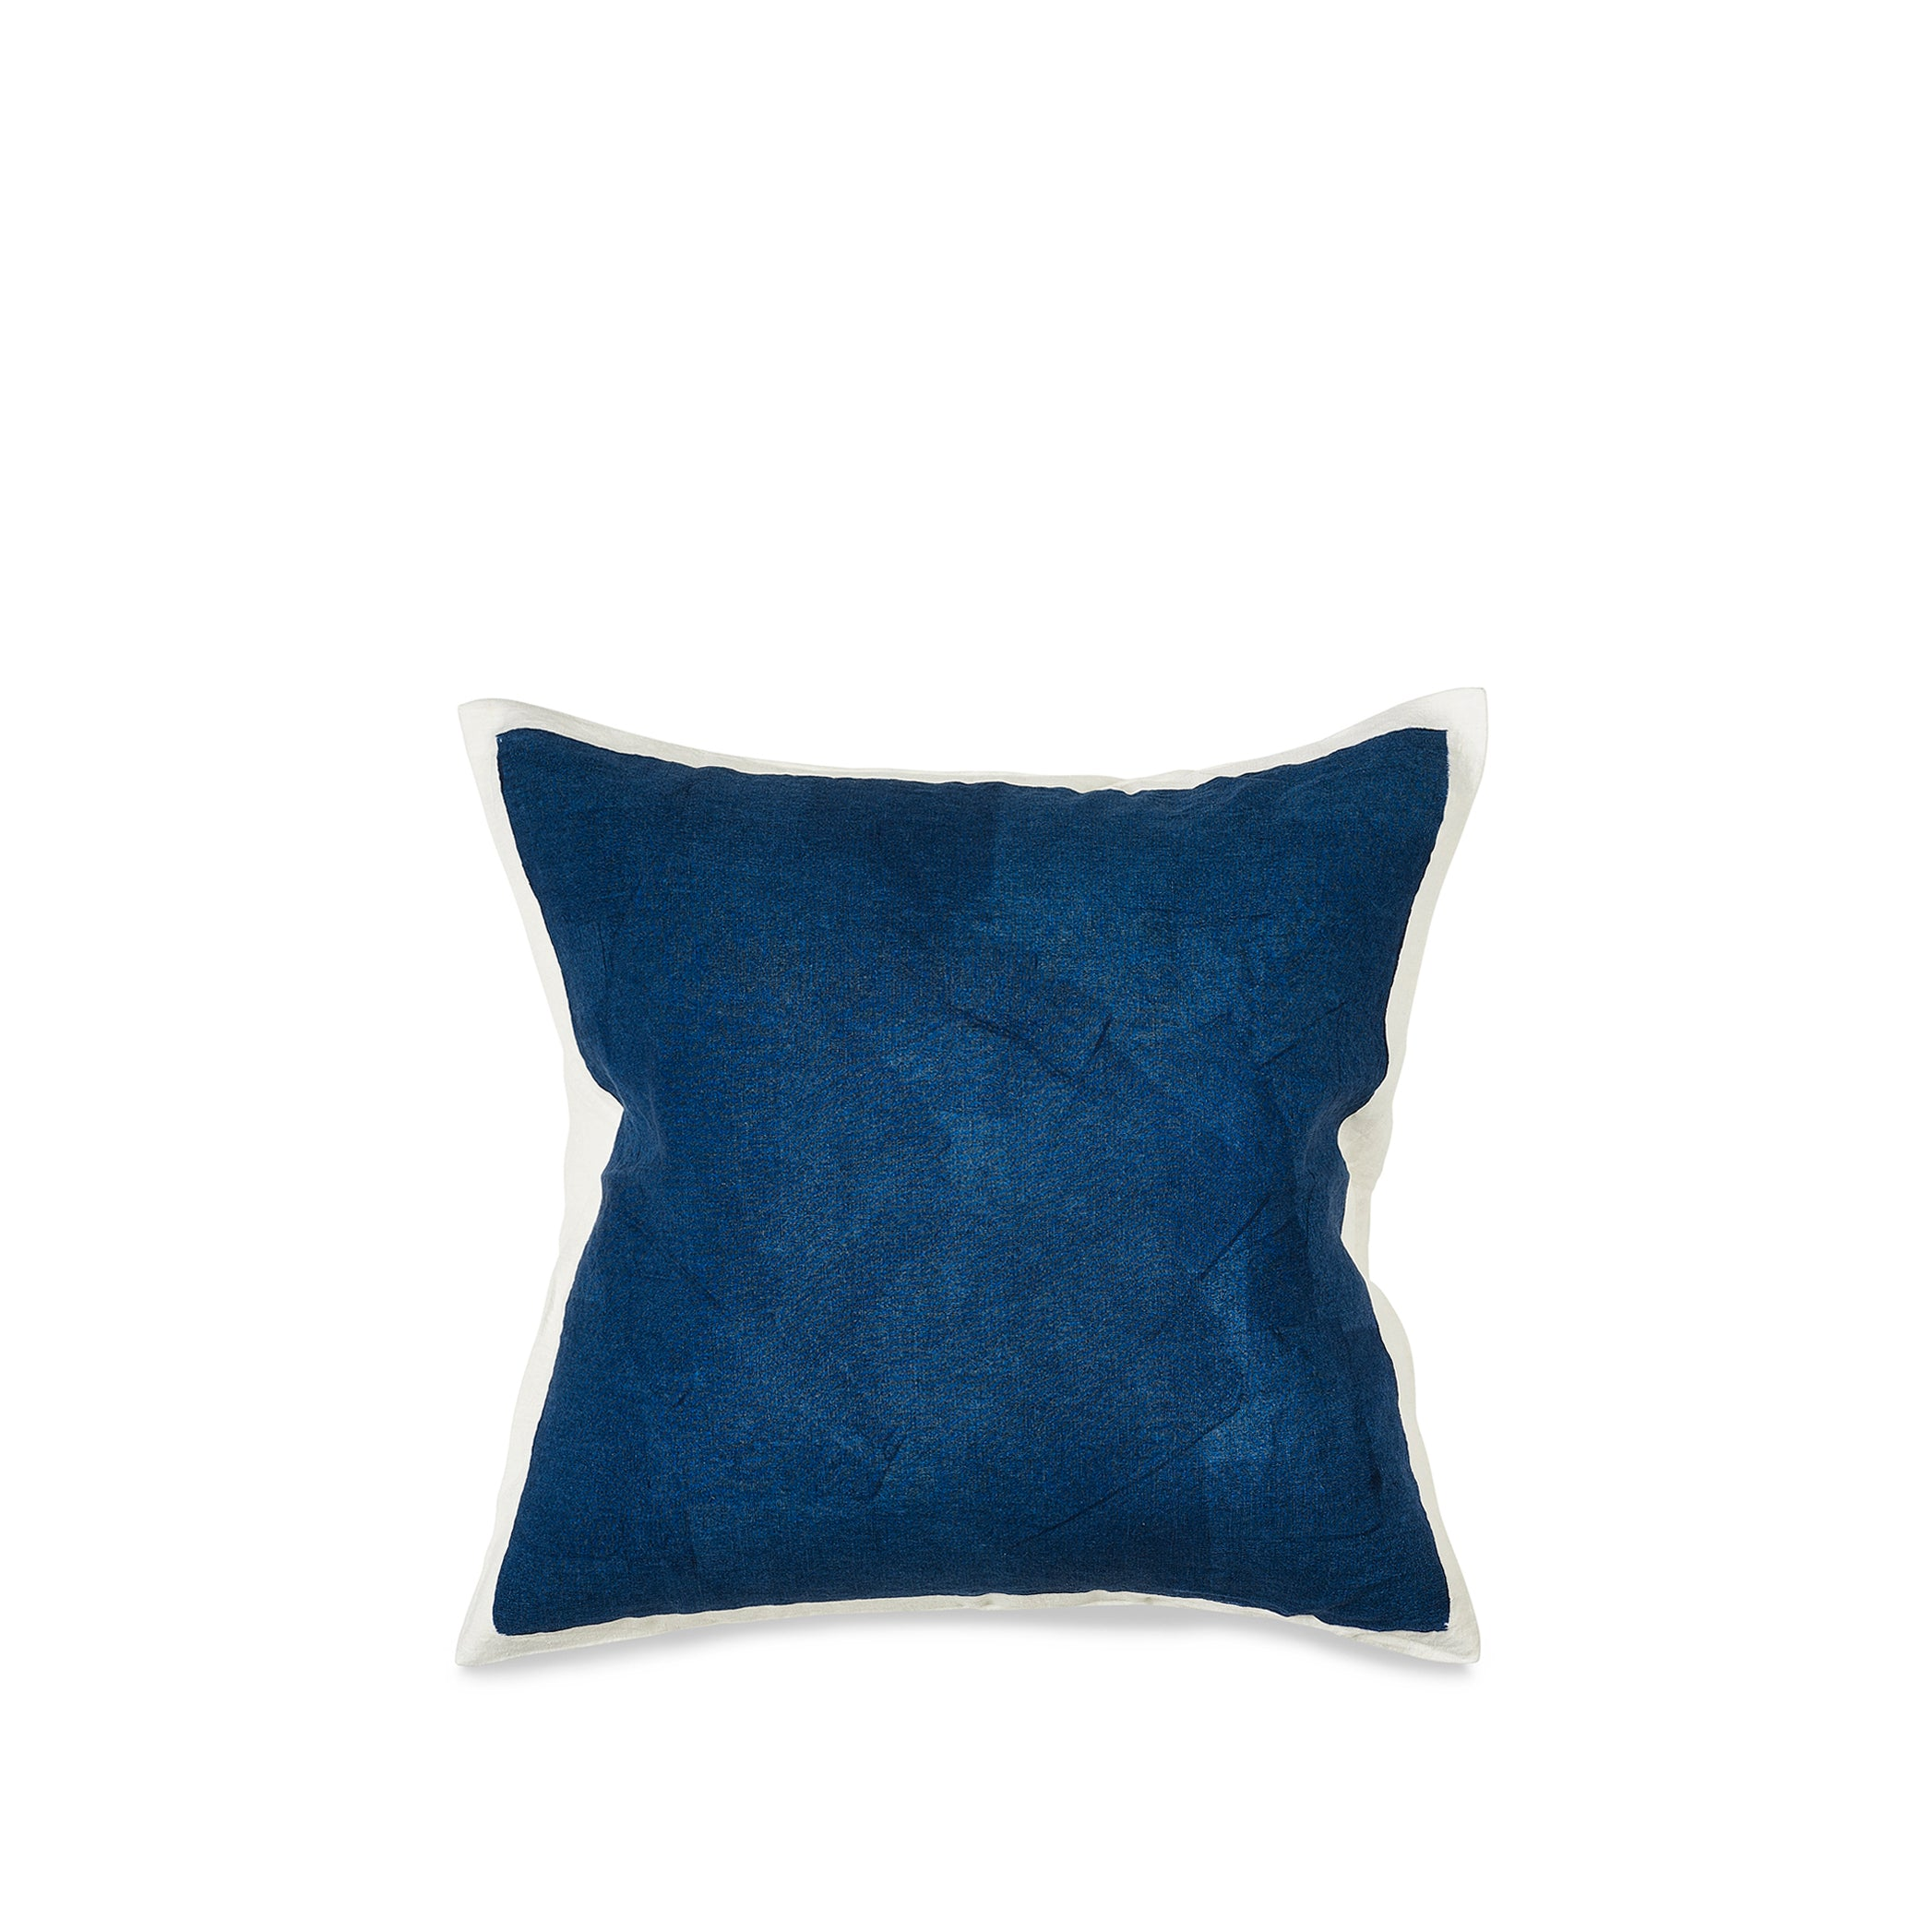 Hand Painted Linen Cushion in Midnight Blue, 50cm x 50cm